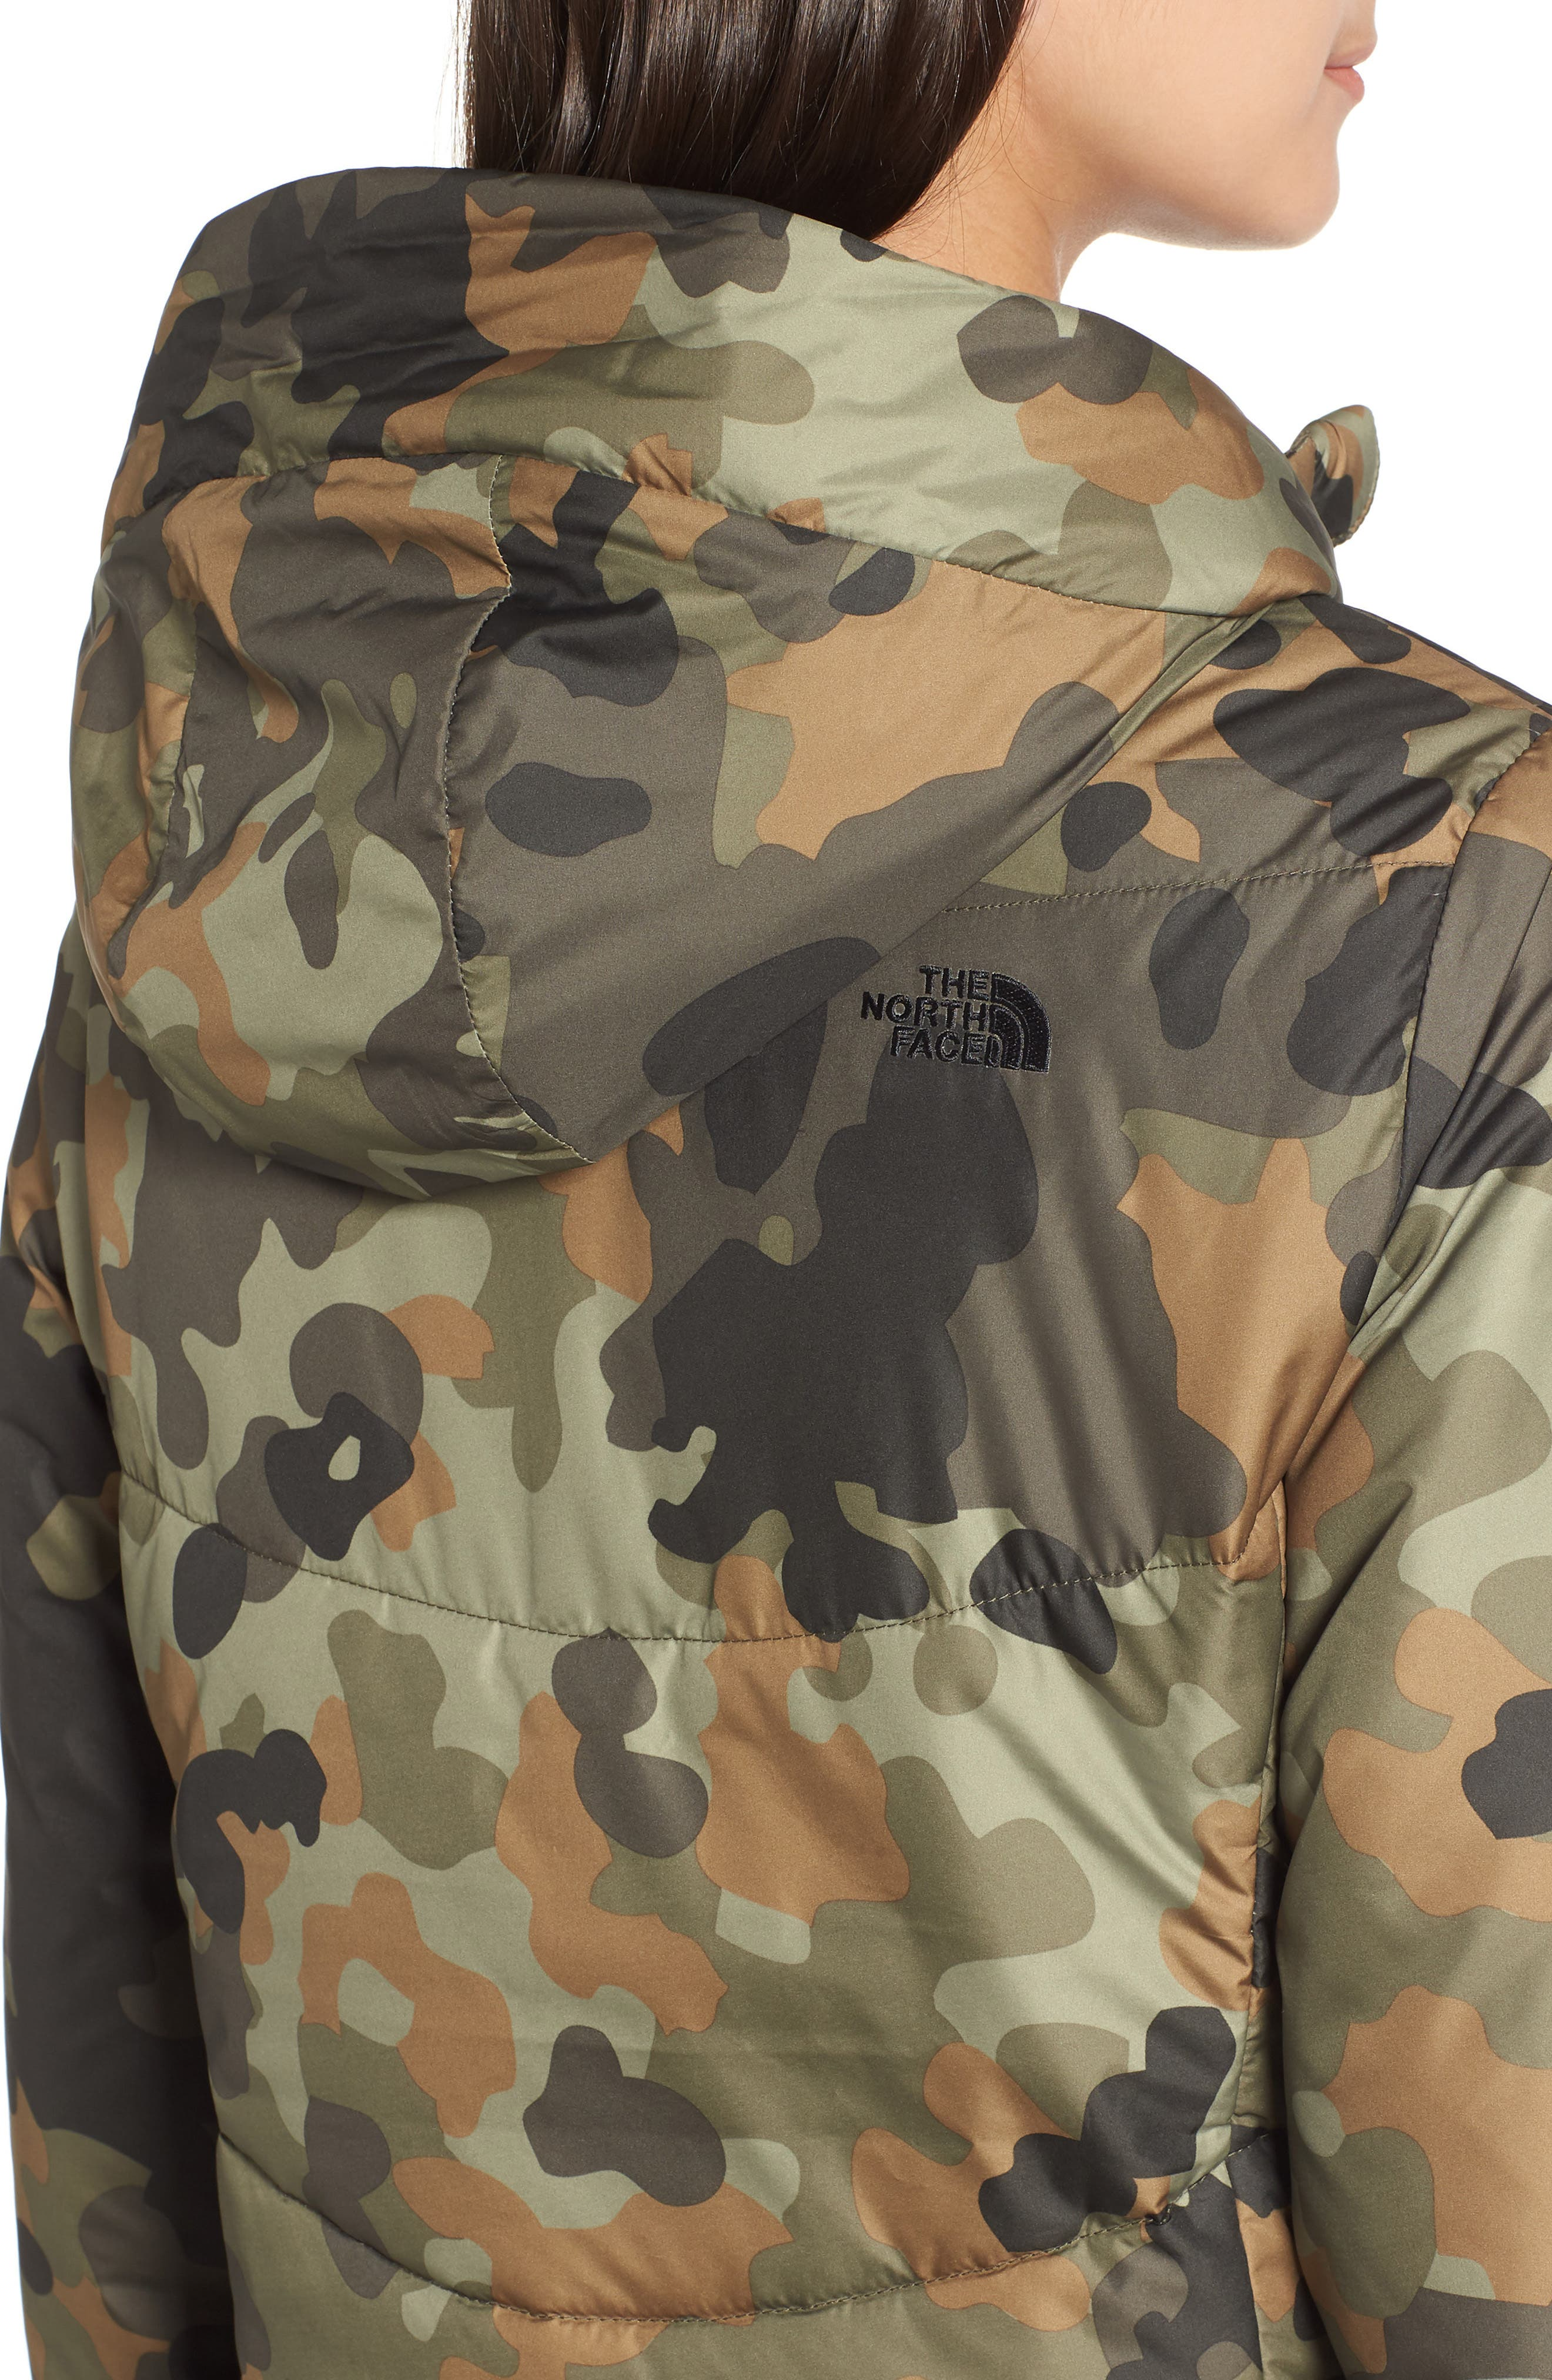 THE NORTH FACE, Harway Heatseeker<sup>™</sup> Water-Resistant Jacket with Faux Fur Trim, Alternate thumbnail 5, color, NEW TAUPE GREEN MACROFLECK